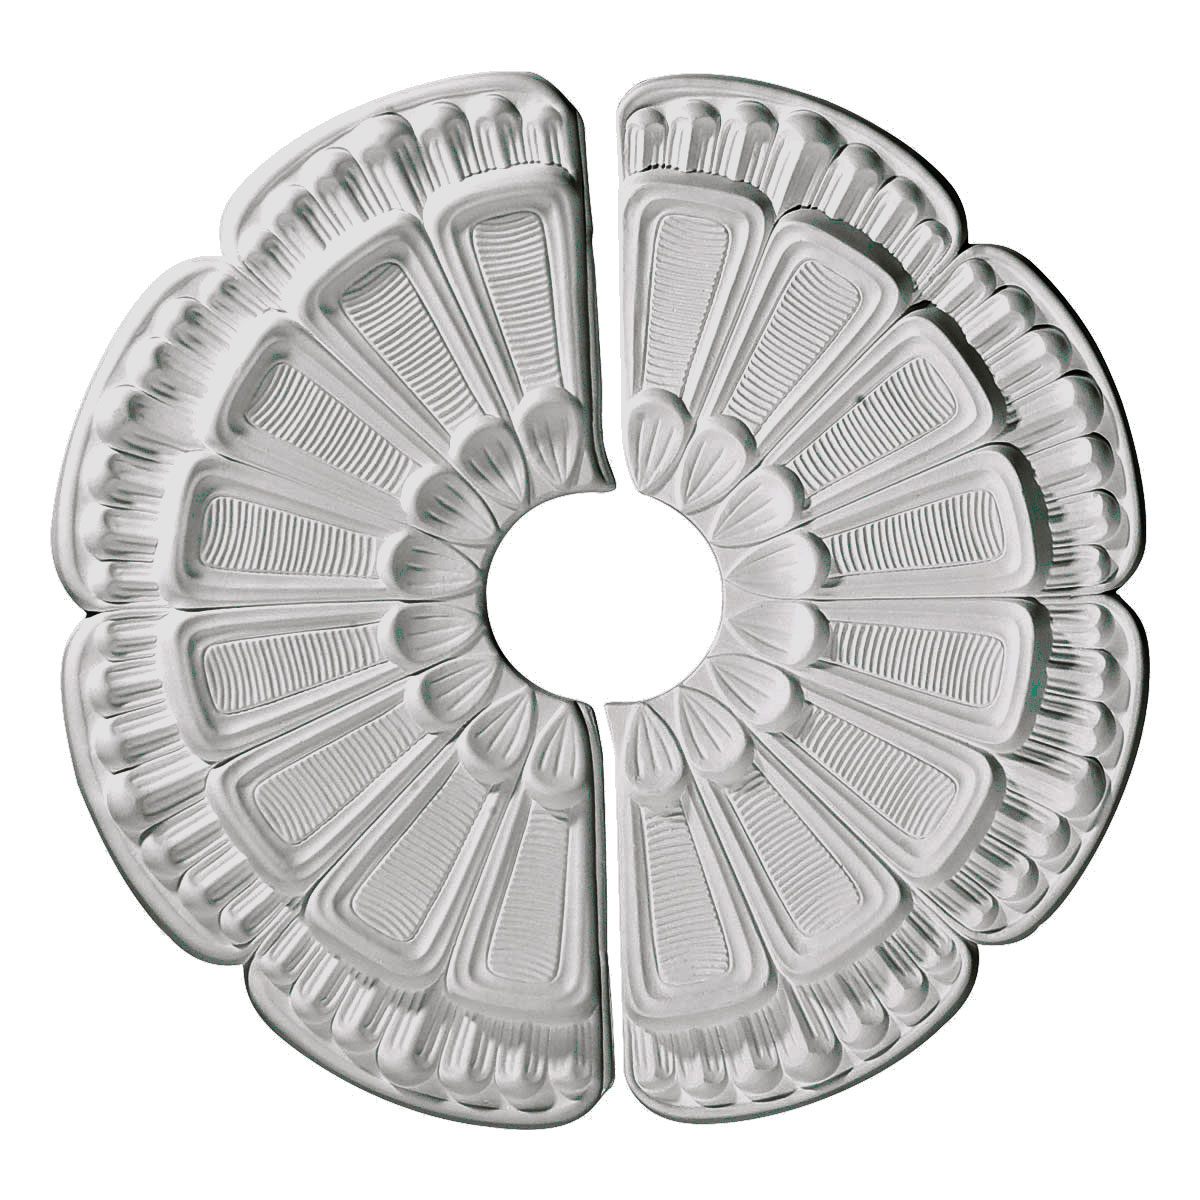 "Ekena Millwork CM18FW2 18.5"" Wide Flower Ceiling Medallion, Two Piece"